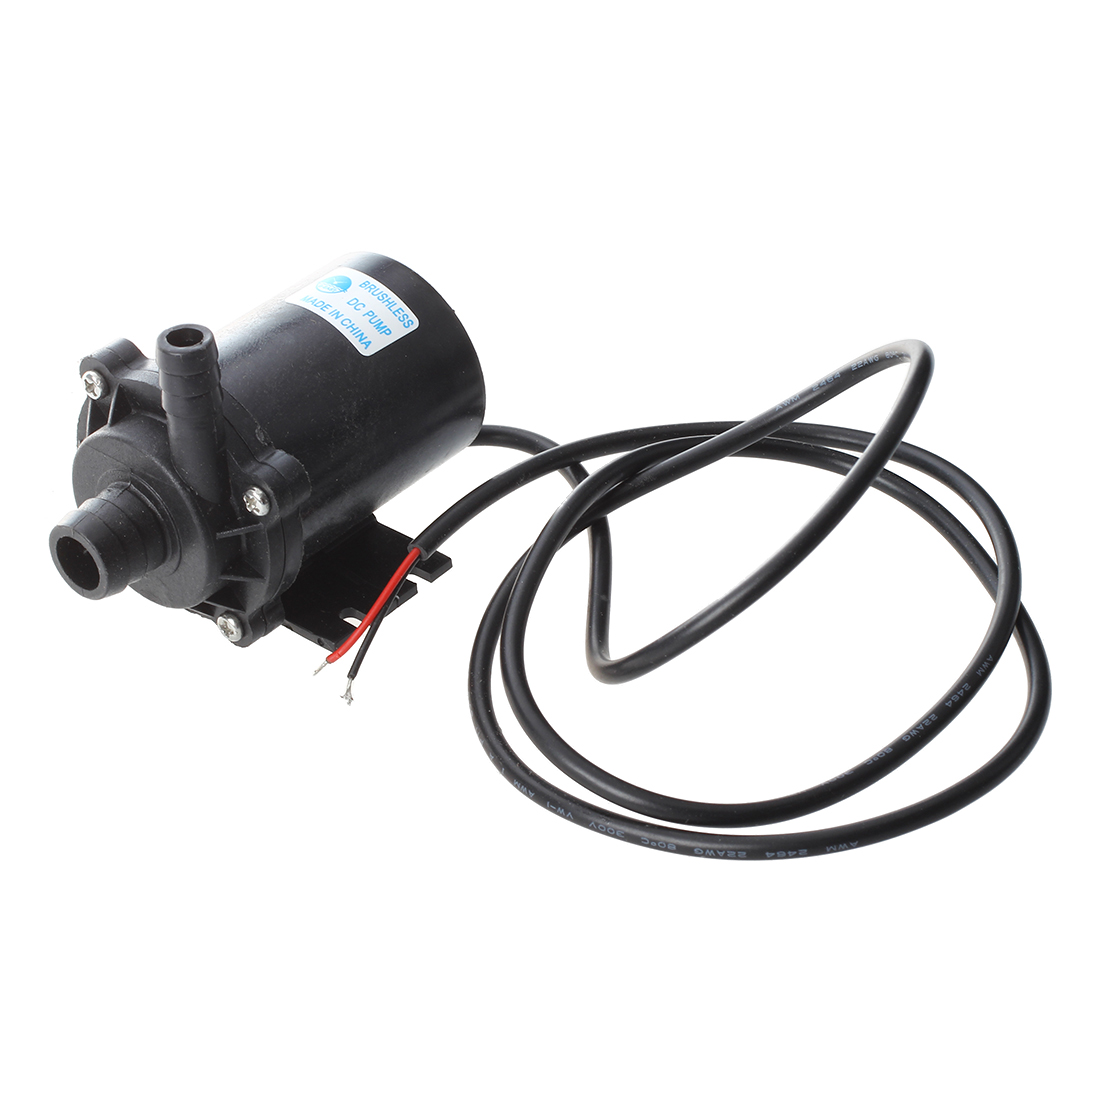 Submersible Water Pump for Fountain Pond Brushless 24V 540LPH